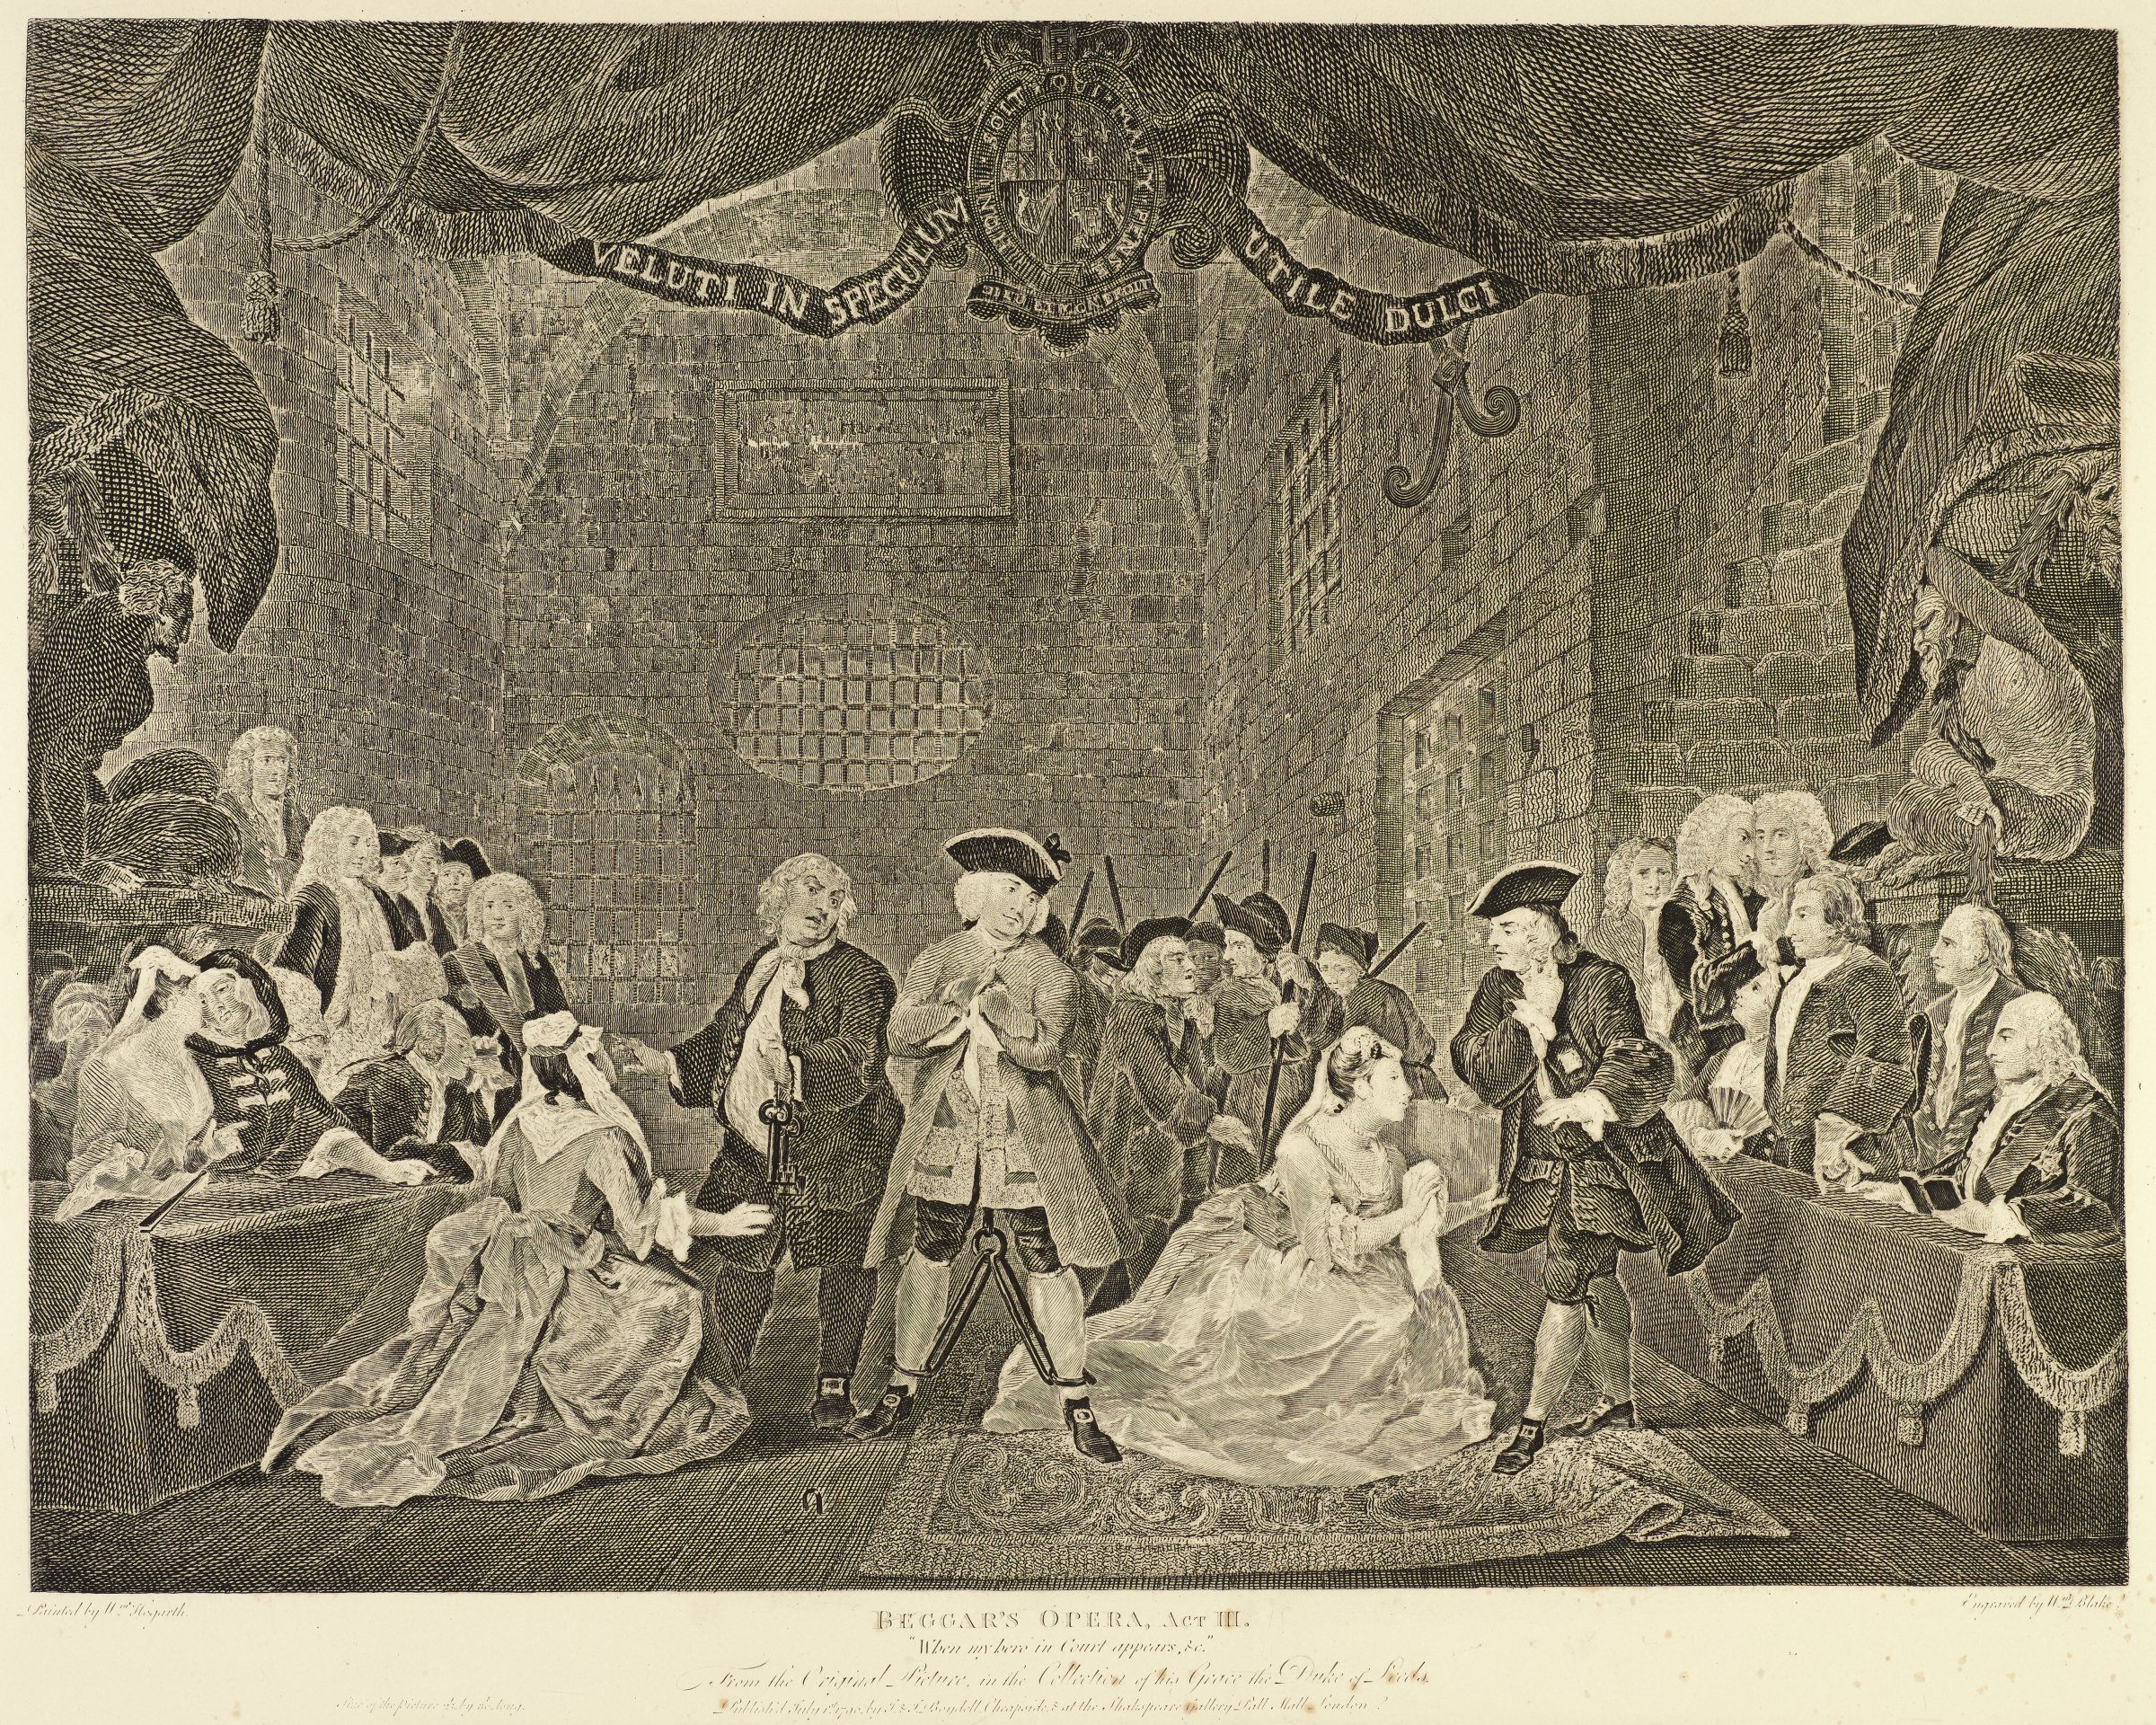 A man is chained in the center of the composition. Two elegantly dressed women are pleading with men of the court. Armed officials stand in the background. A gossiping audience is seen on the right and left of the room.